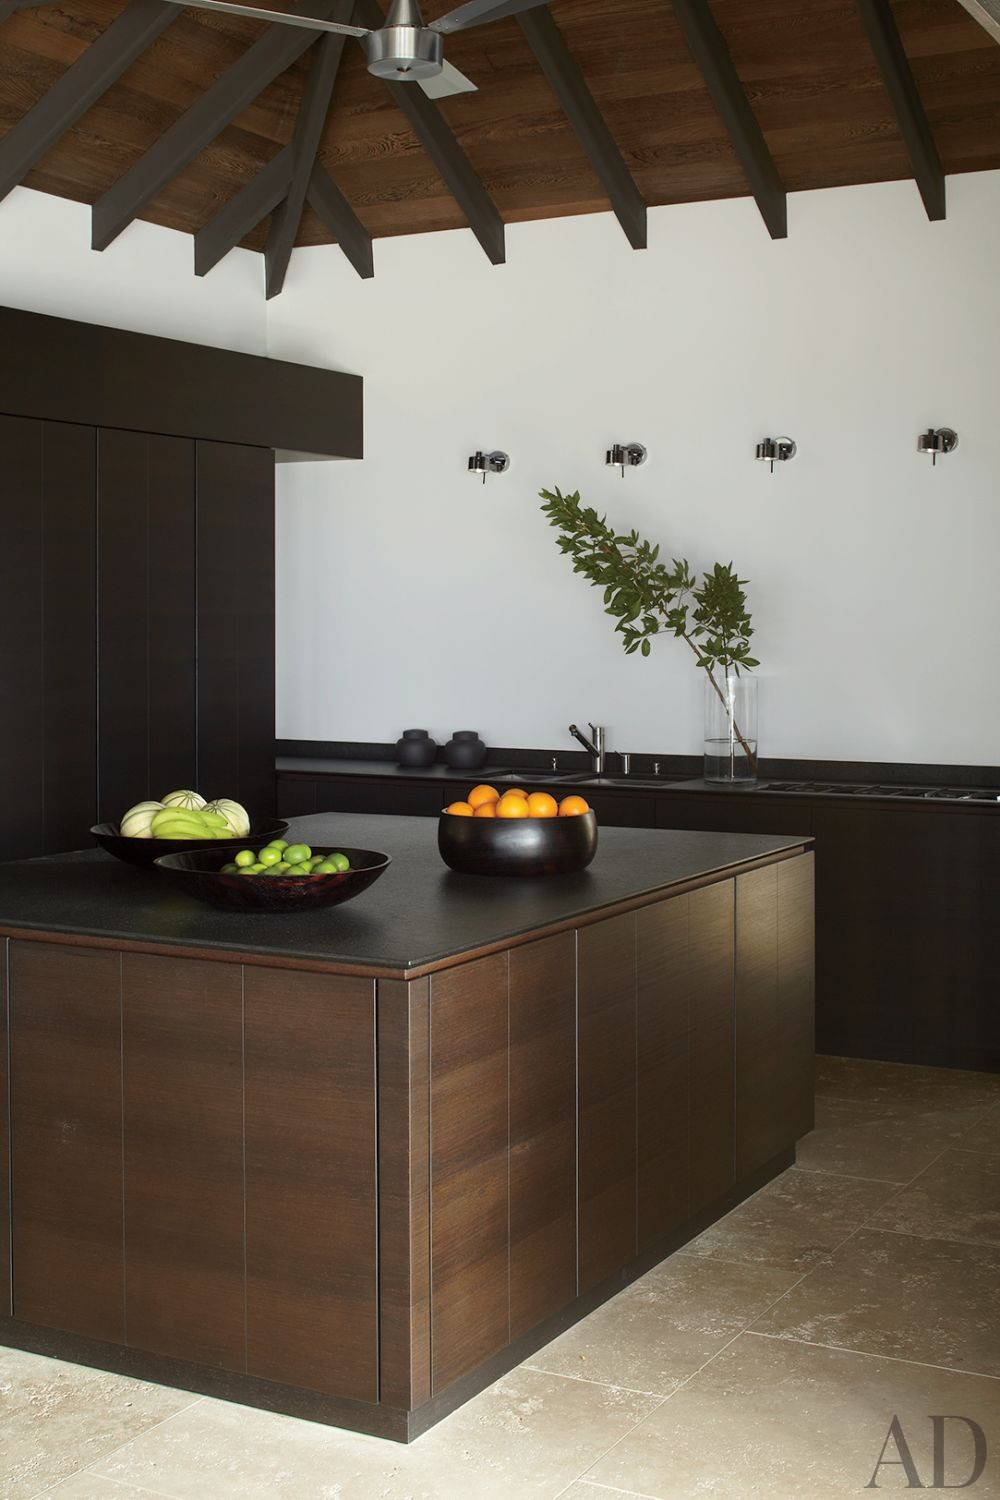 Contemporary Kitchen and Wolfgang Ludes and Johannes Zingerle in St. Barts